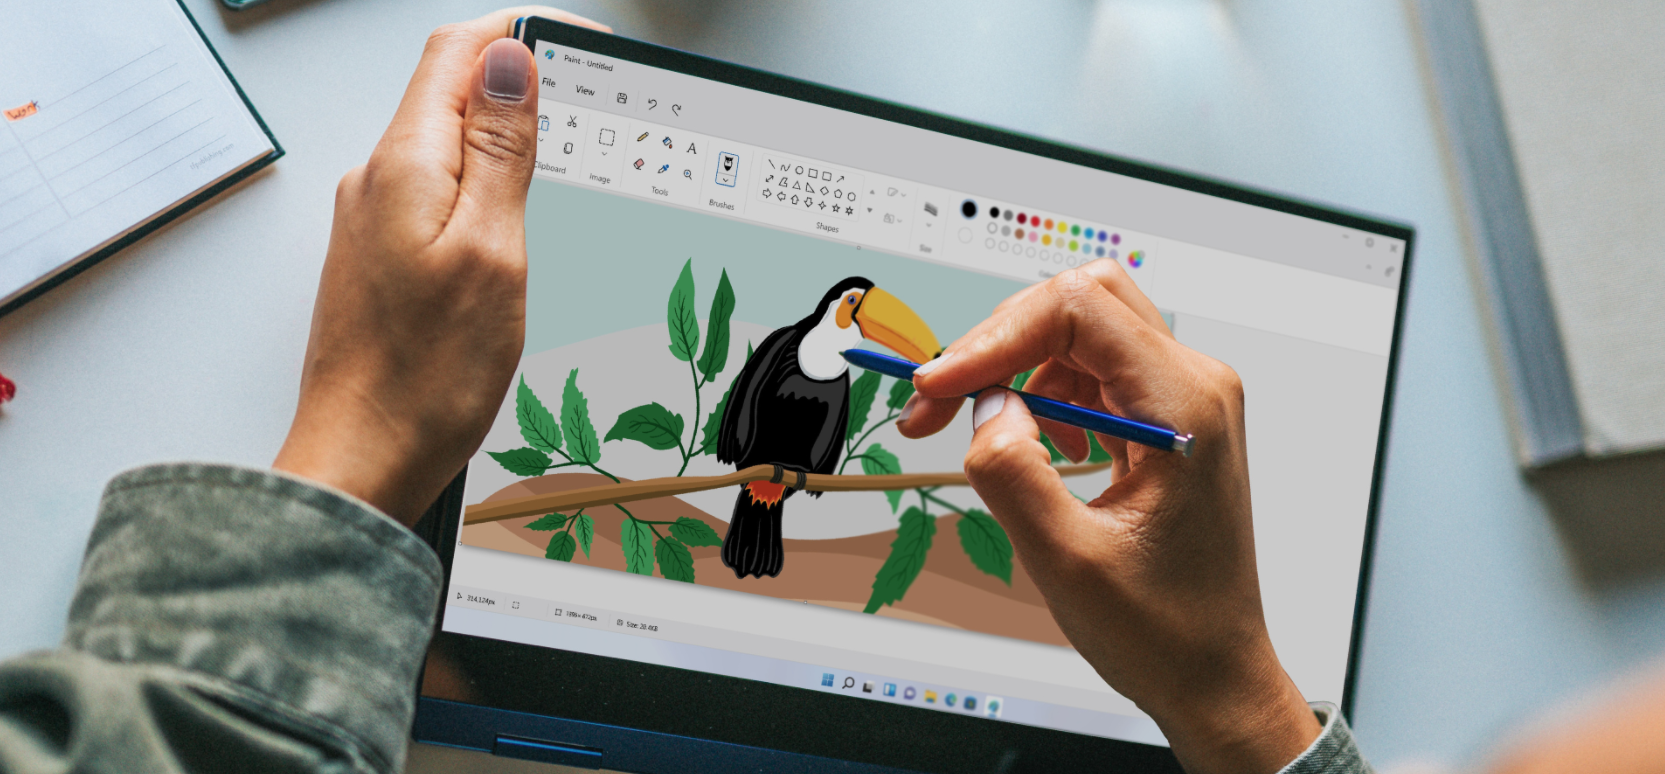 MS Paint and Photos is getting a new fresh version in Windows 11